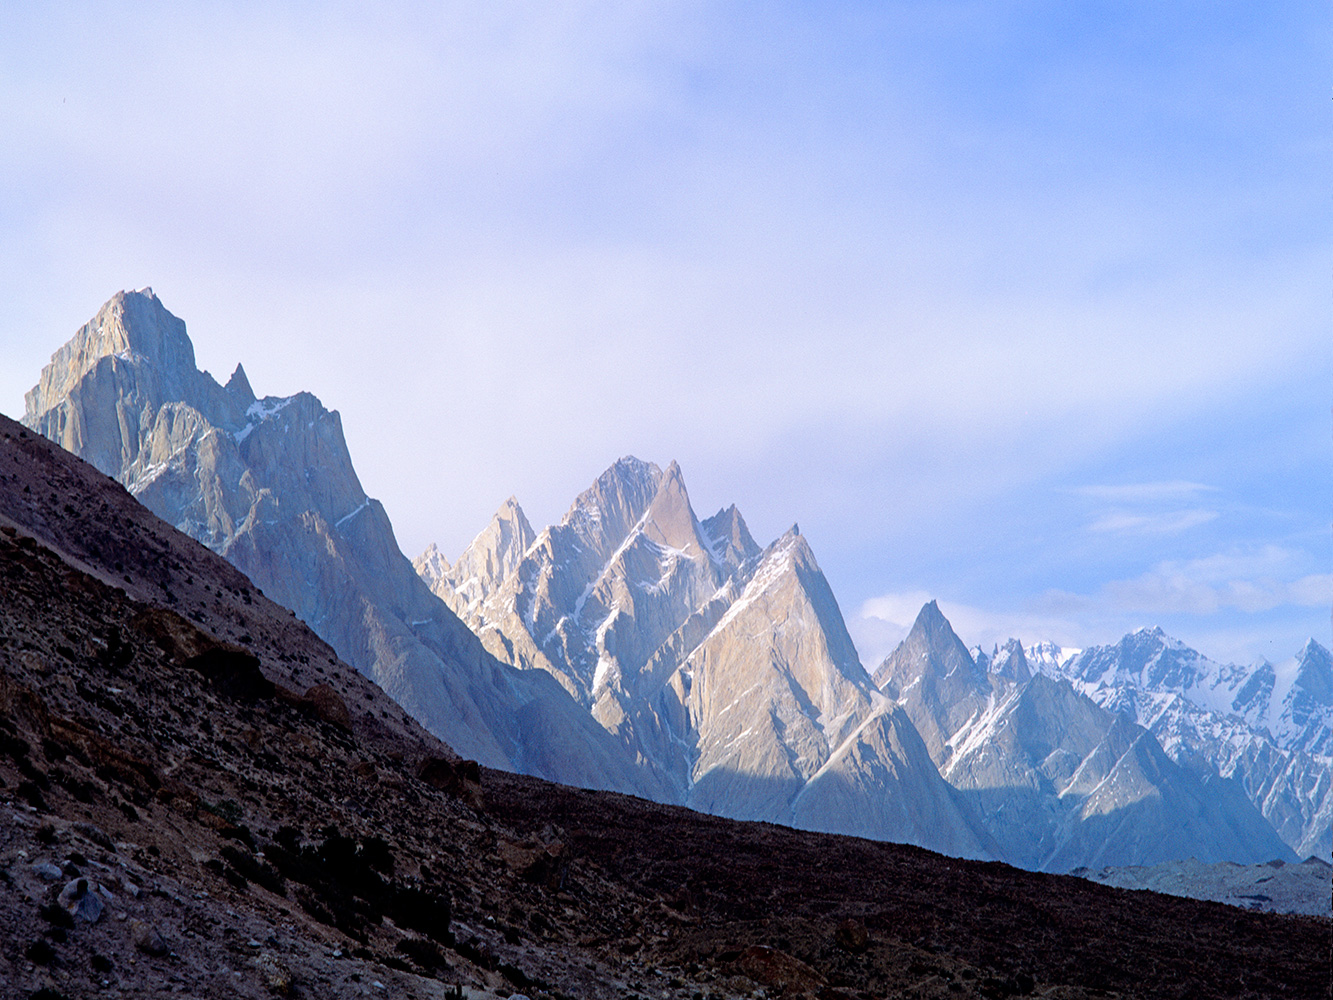 A view to the Cathedral Spires and the snout of the Baltoro glacier.